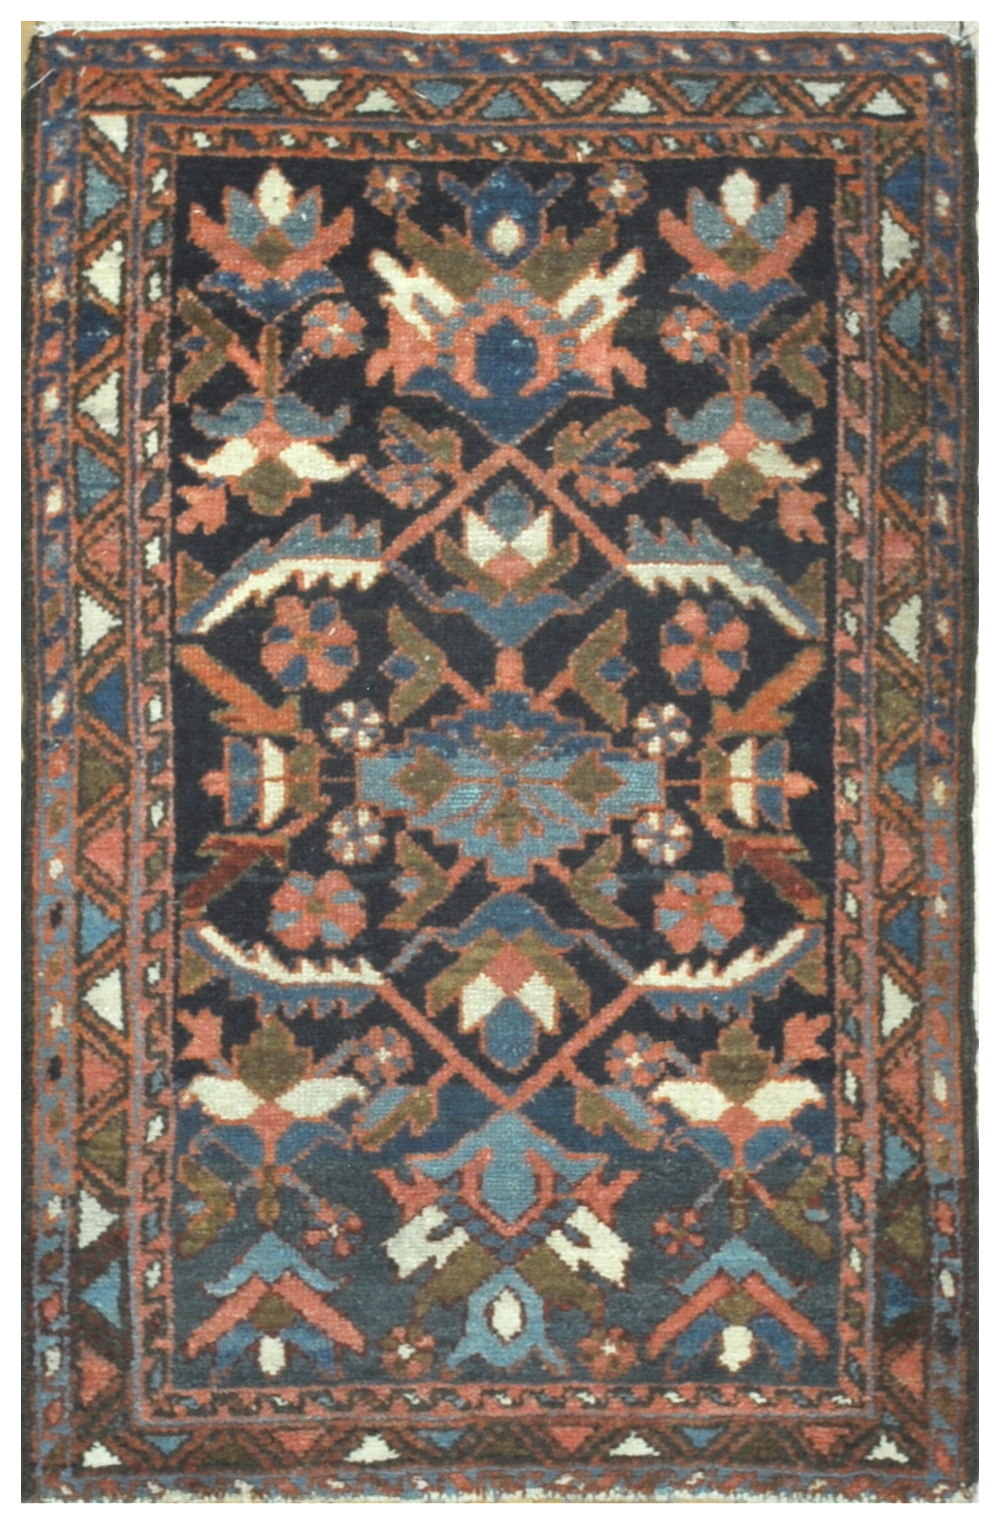 Small Antique Hand Knotted Wool Persian